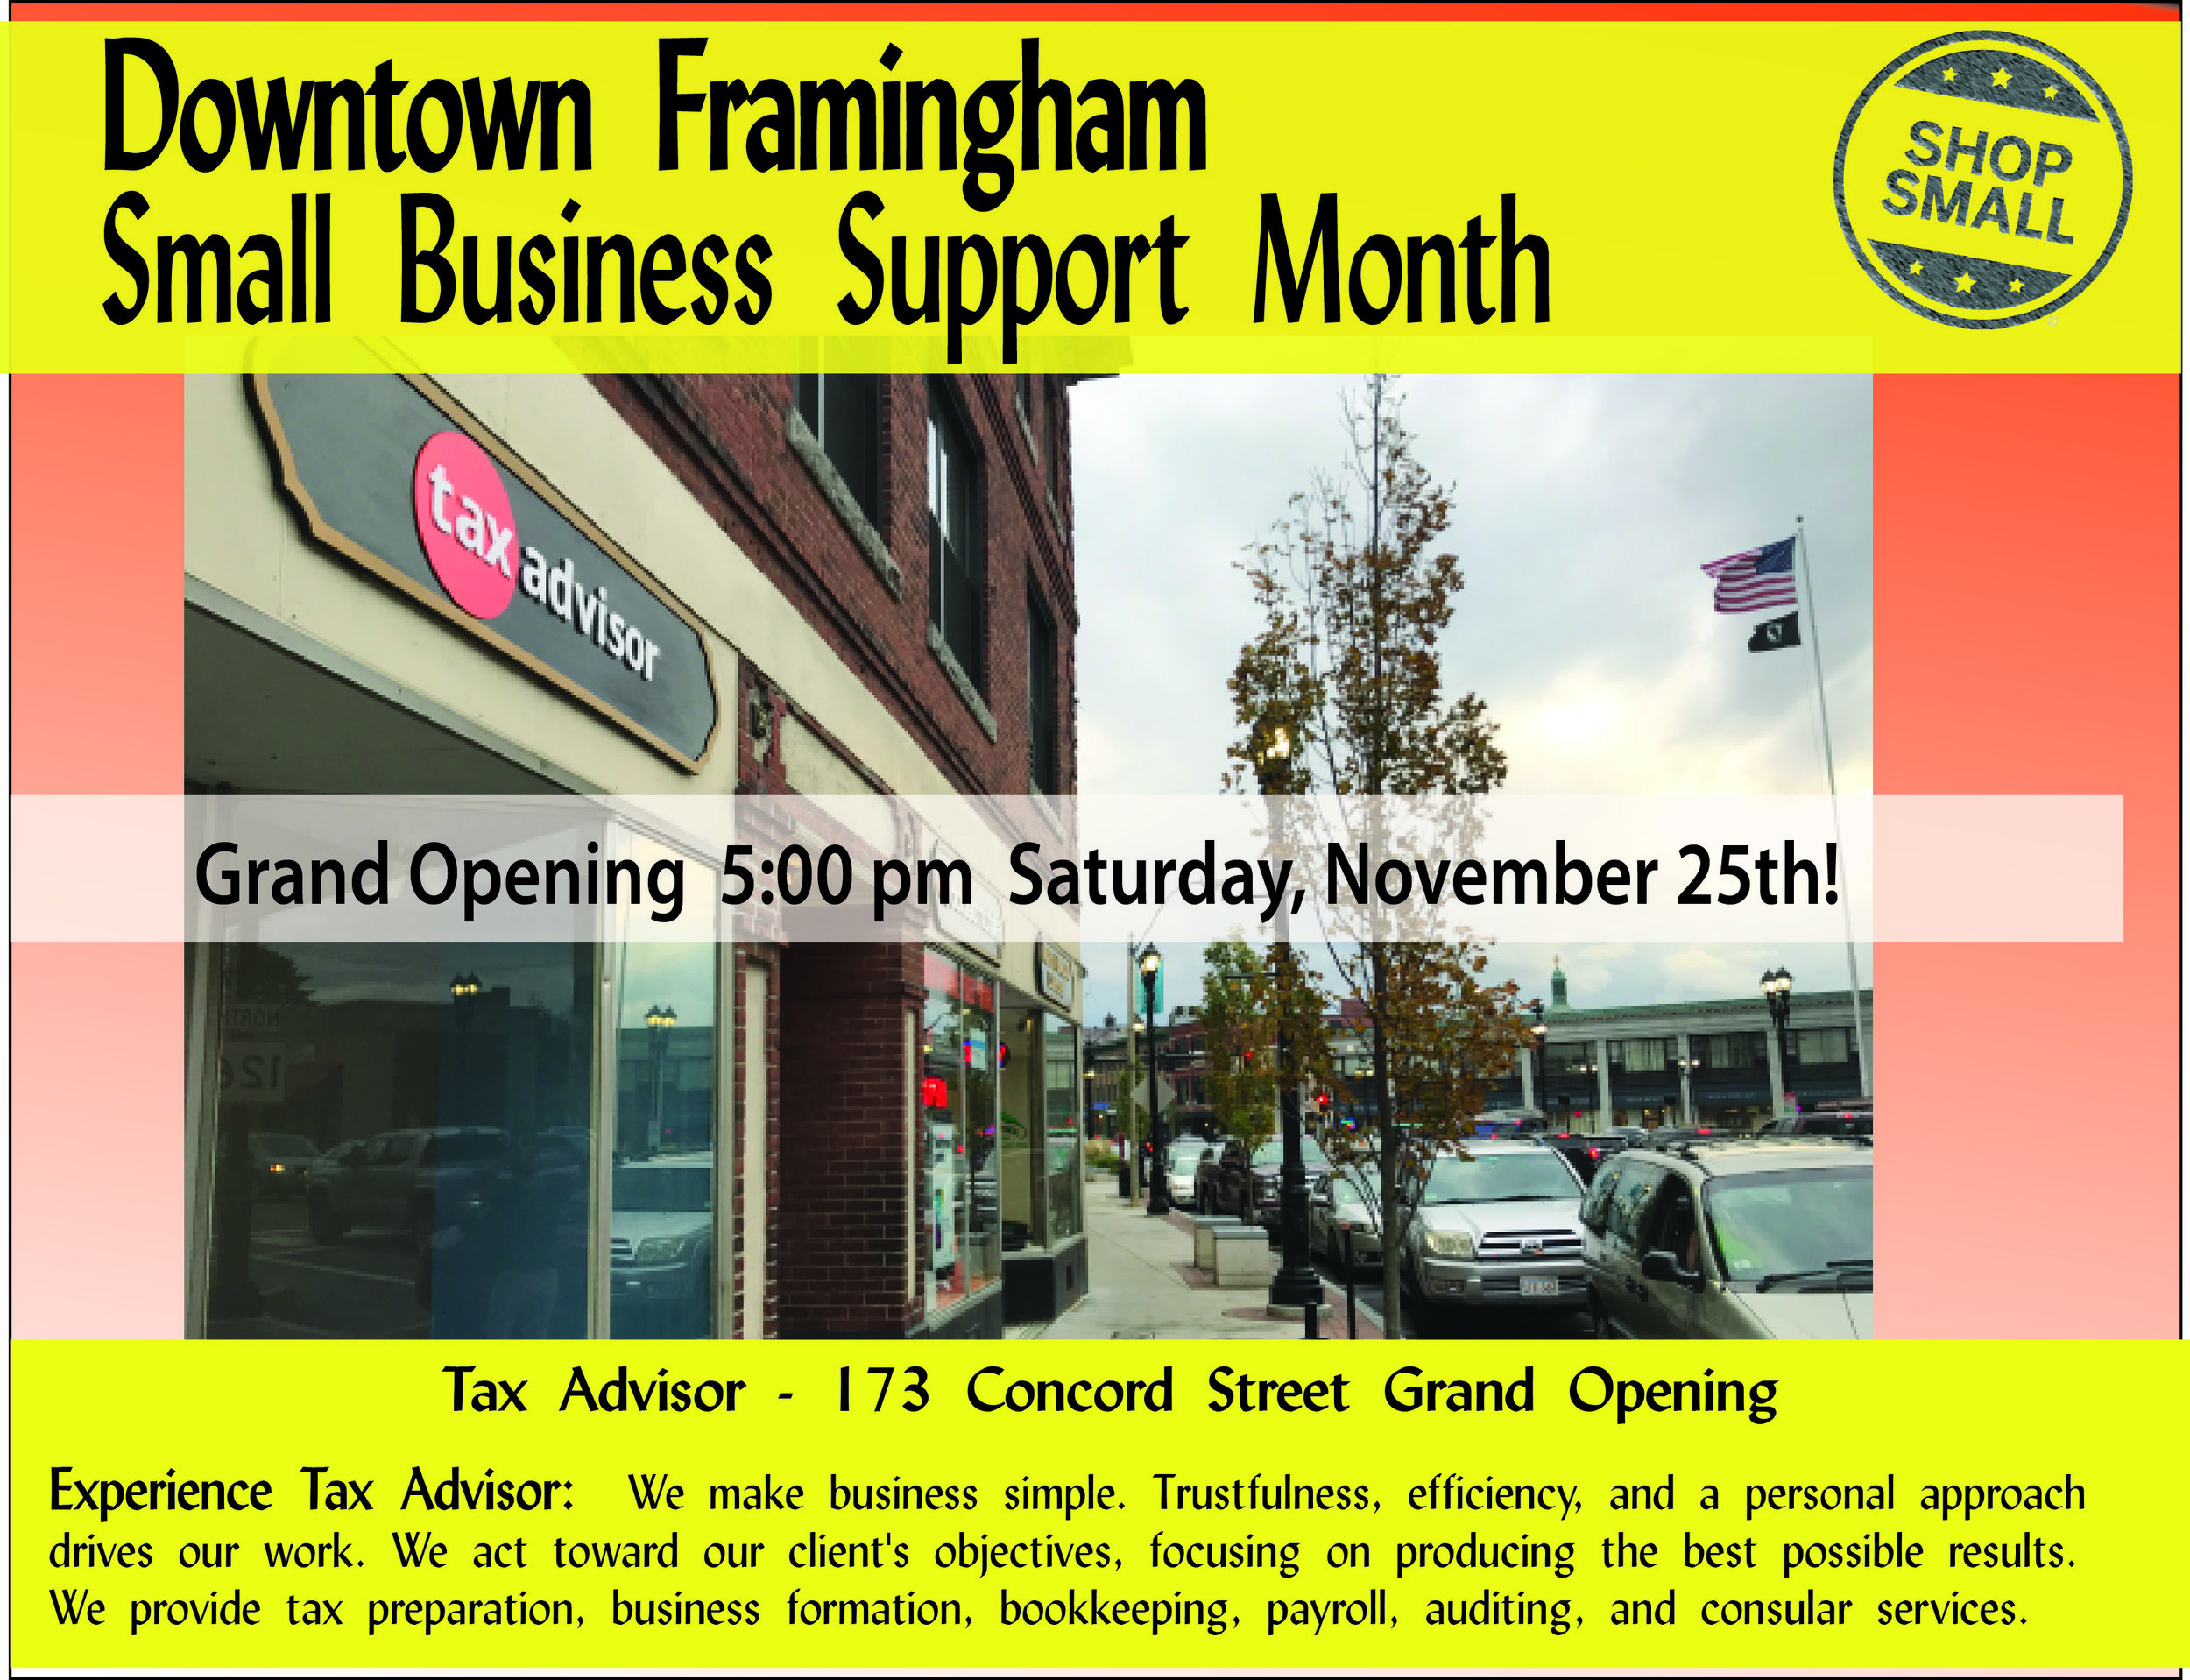 It's Day 25 of Small Business Support Month! Reason #25: WELCOME NEW BUSINESSES WITH OPEN ARMS!  When a new, small business opens, the local community cannot wait to meet the owners, who often are just as excited to display their personal touch. Join us at 5 pm on Saturday, November 25th for the GRAND OPENING OF Tax Advisor with business owner and local leader Thiago Dias!